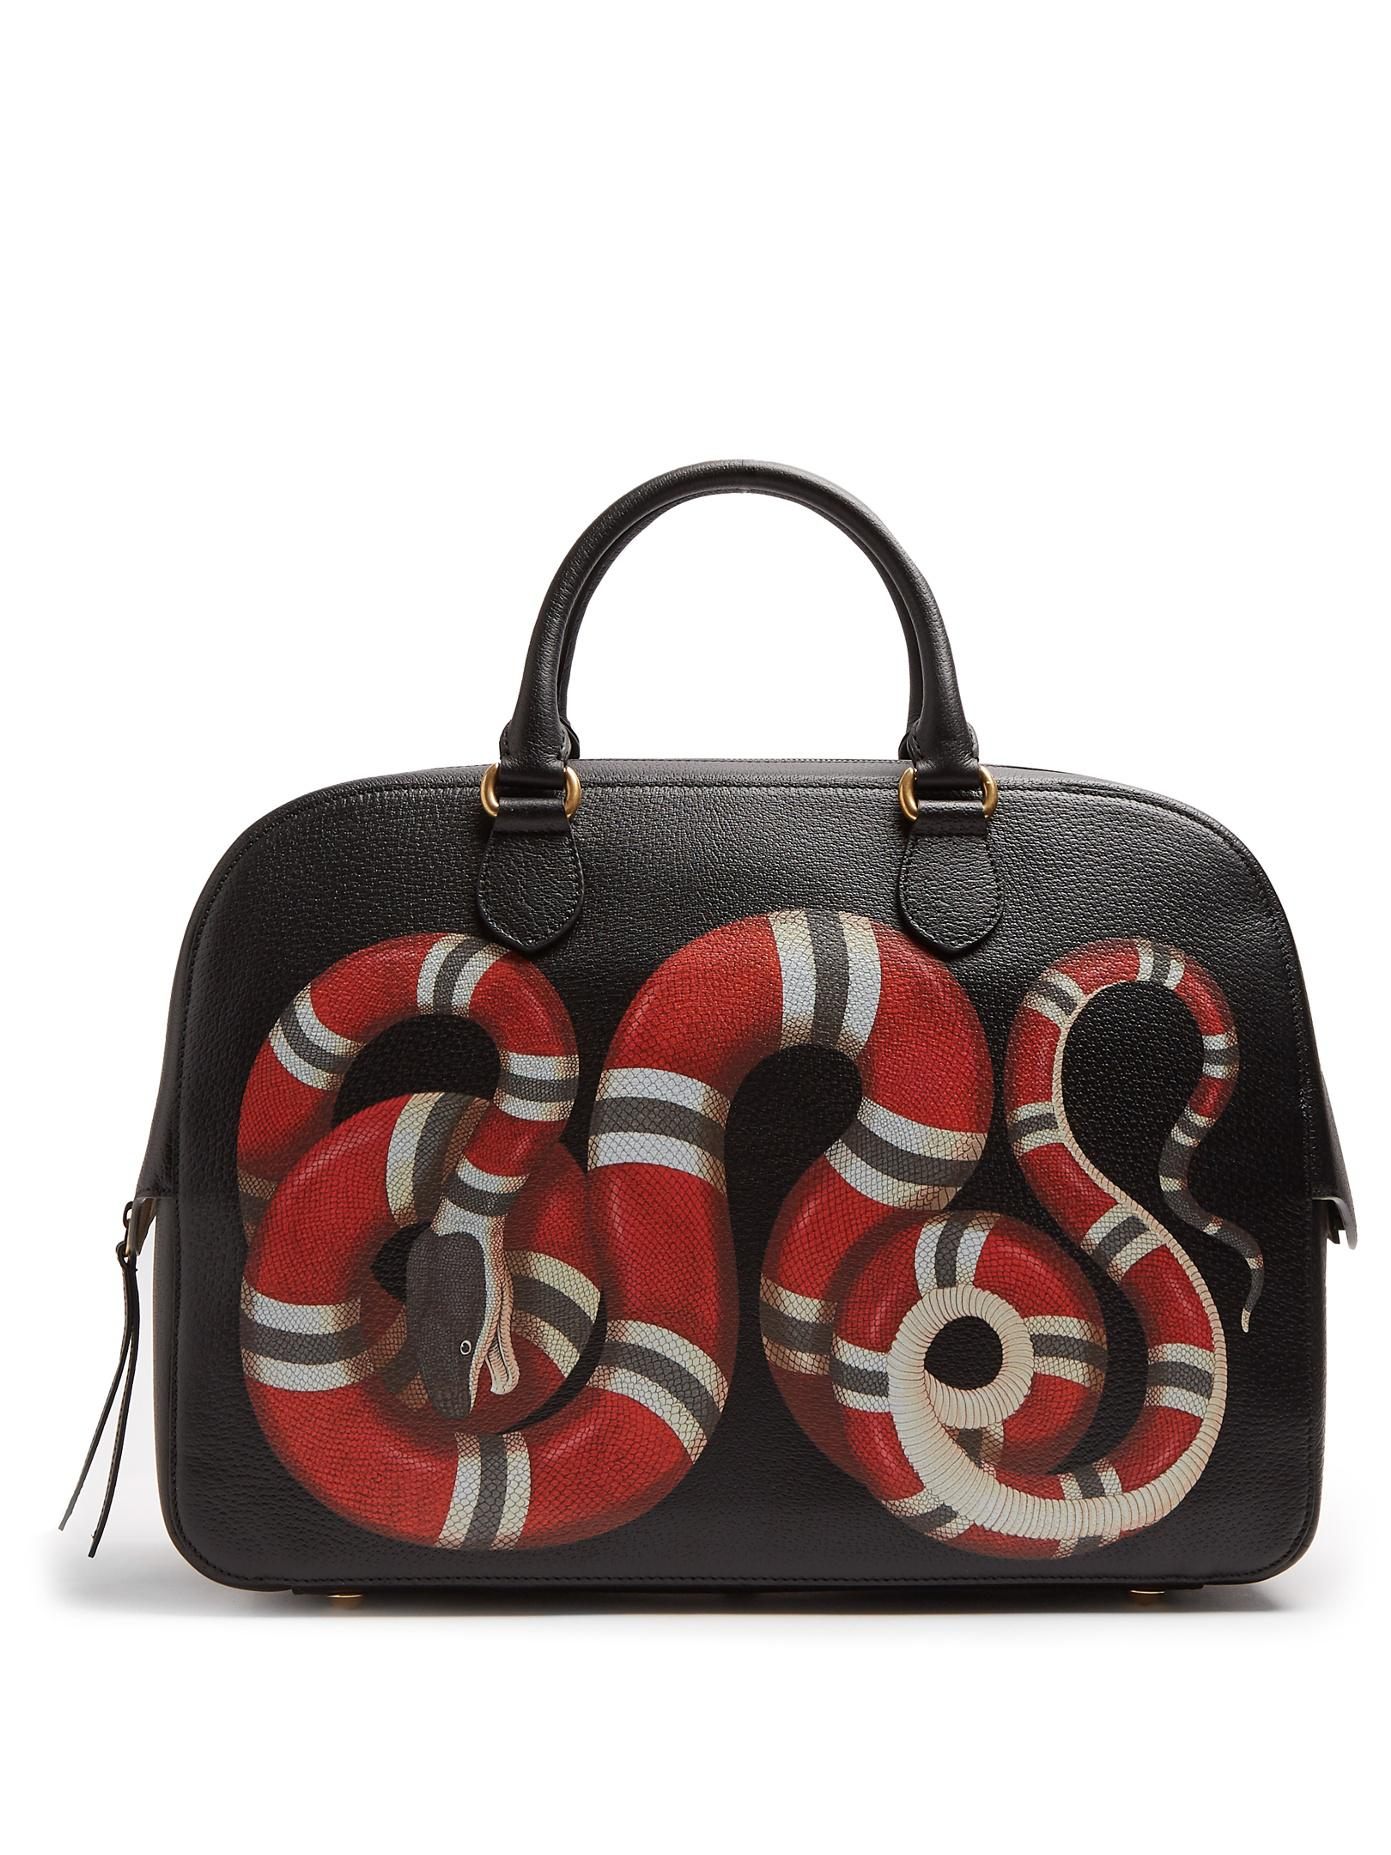 767bc80c1637 Gucci Snake Print Leather Duffle in Black for Men - Lyst